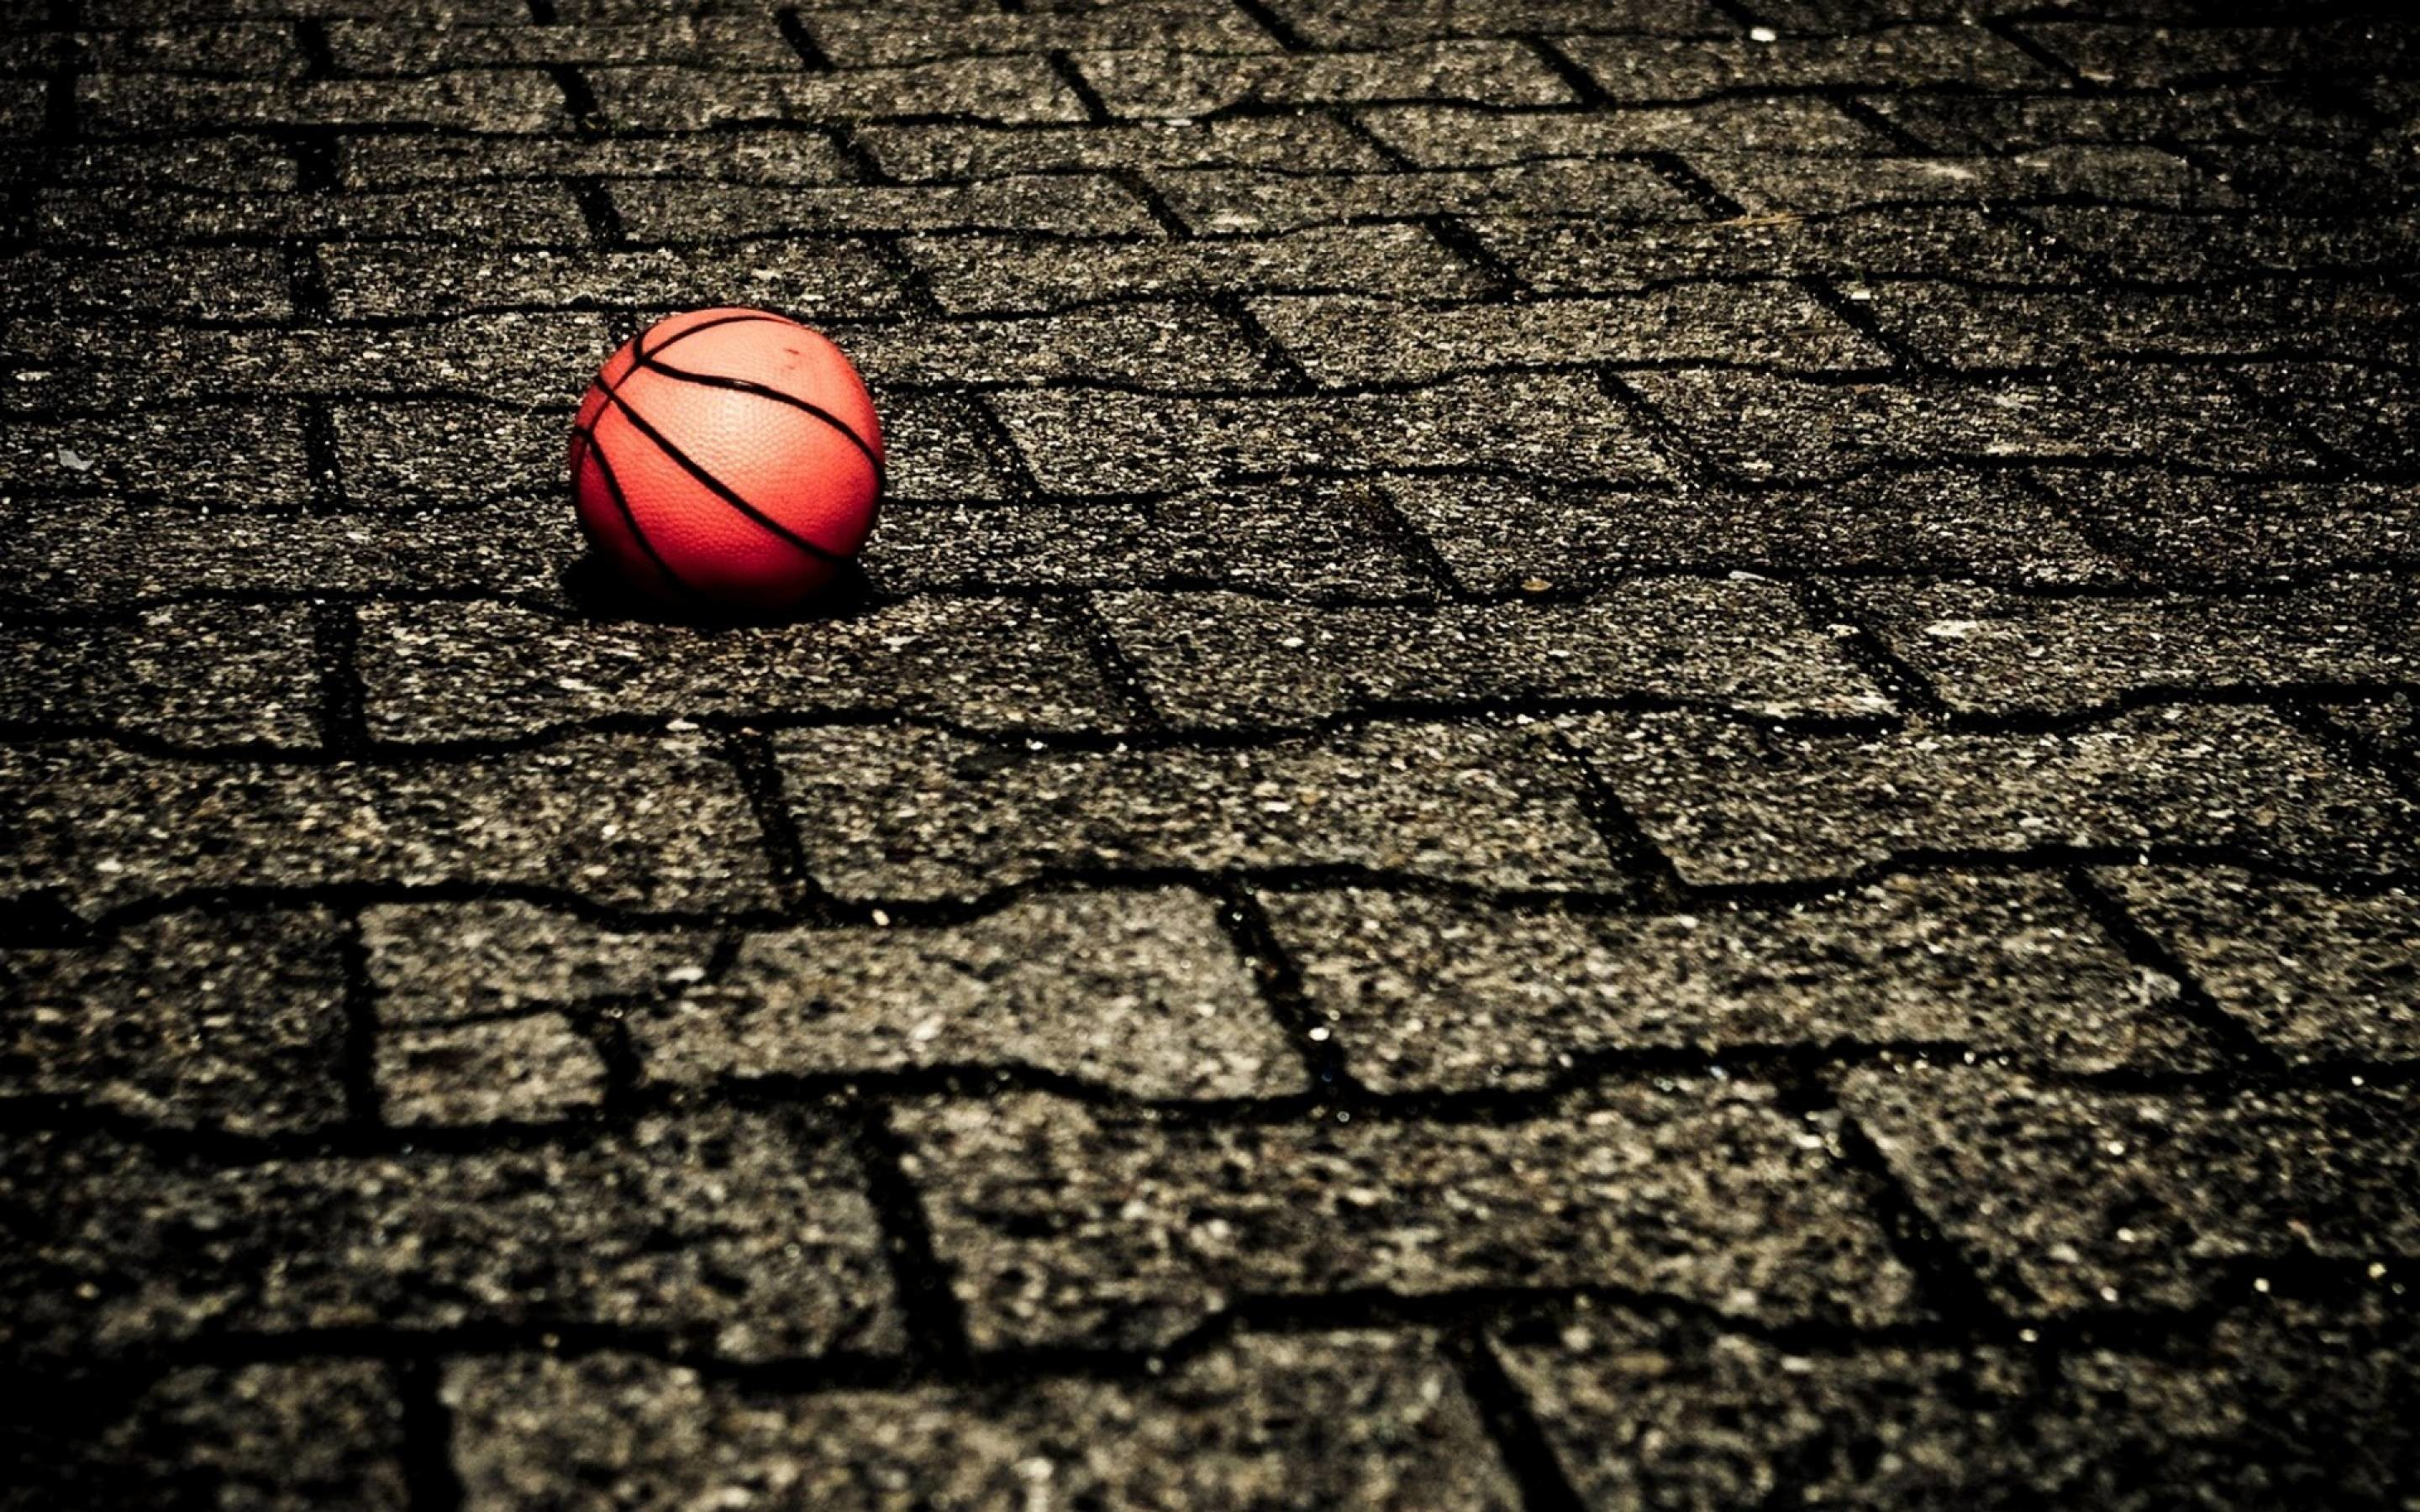 2880x1800 HD Basketball Wallpapers - Wallpaper Cave